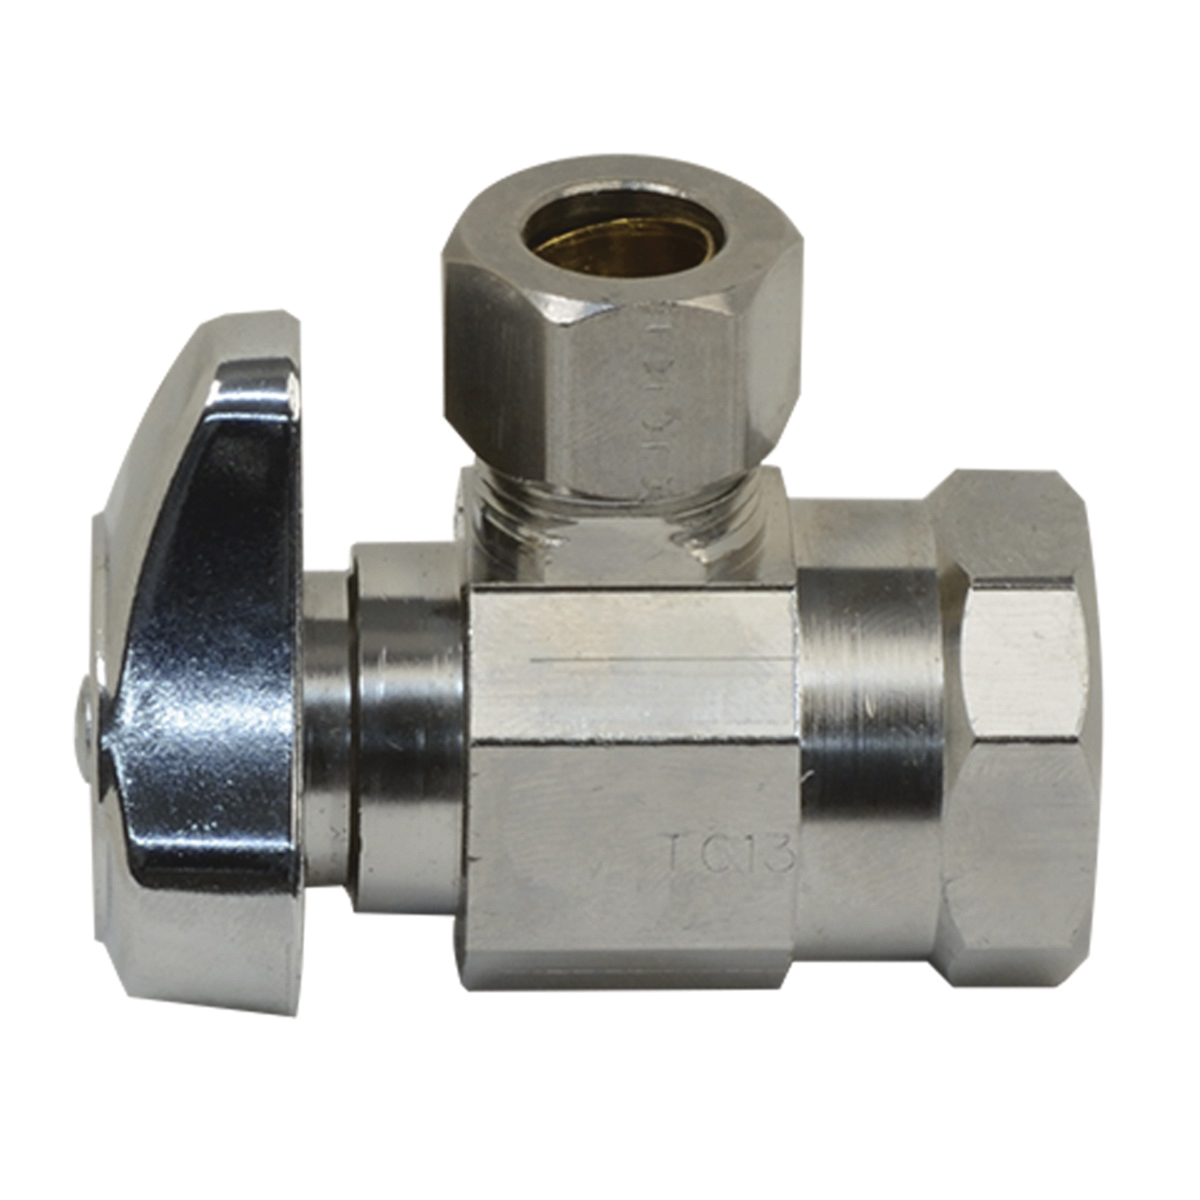 BrassCraft® G2R17XC1 Brass Angle Supply Stop Valve, 1/2 in x 3/8 in, FIP x Compression, 125 psi, 40 - 140 deg F